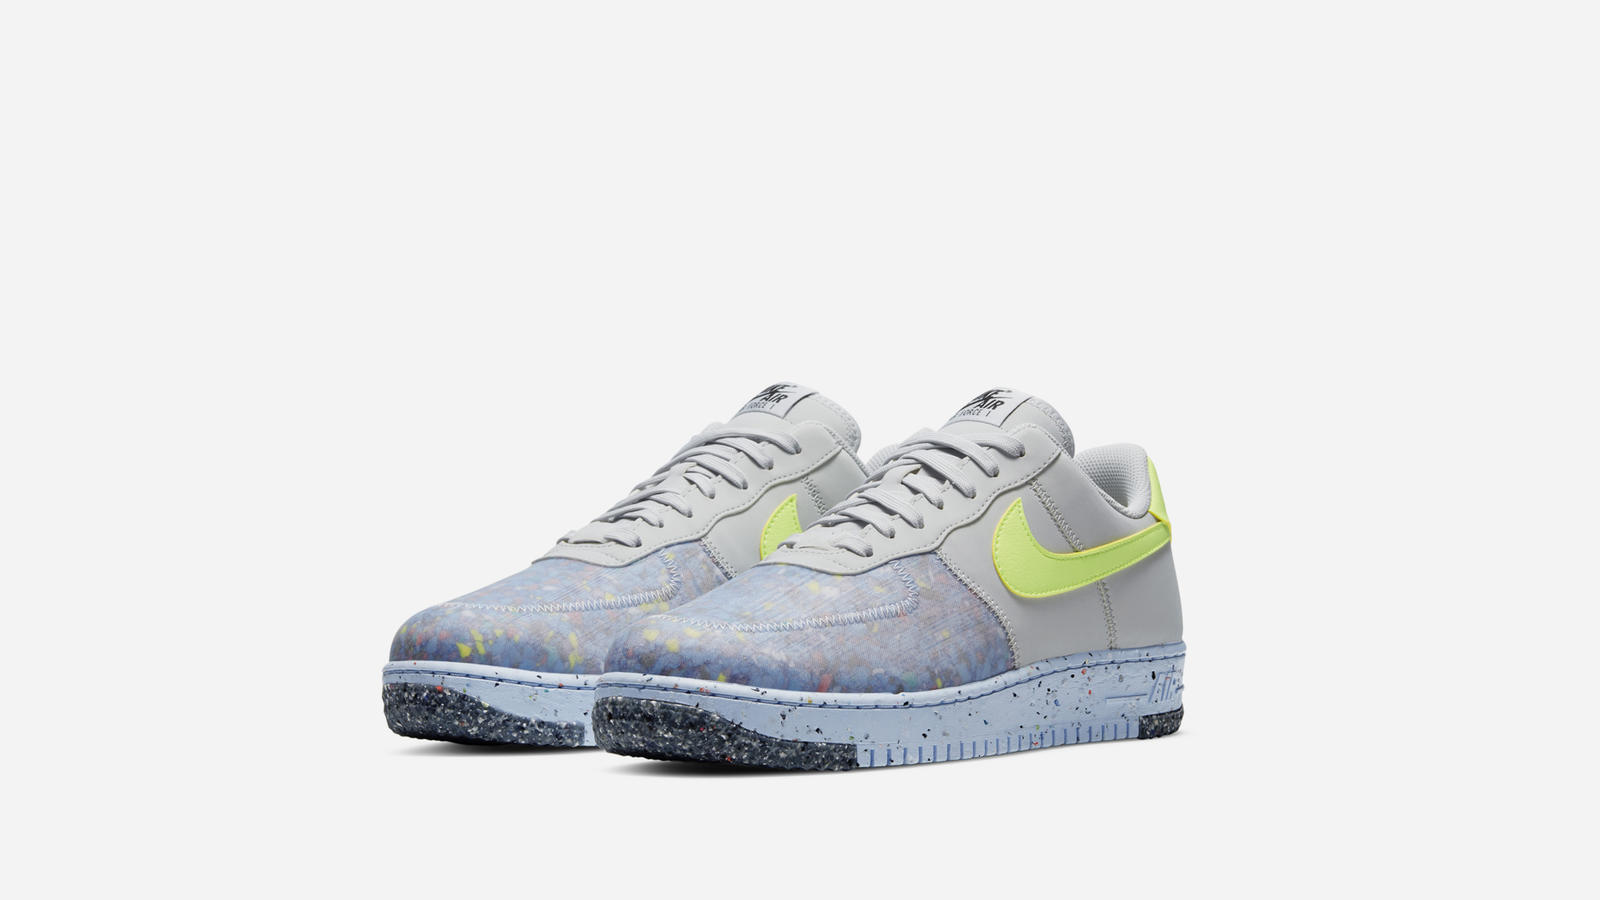 Nike Air Force 1 Crater Official Images and Release Date 6